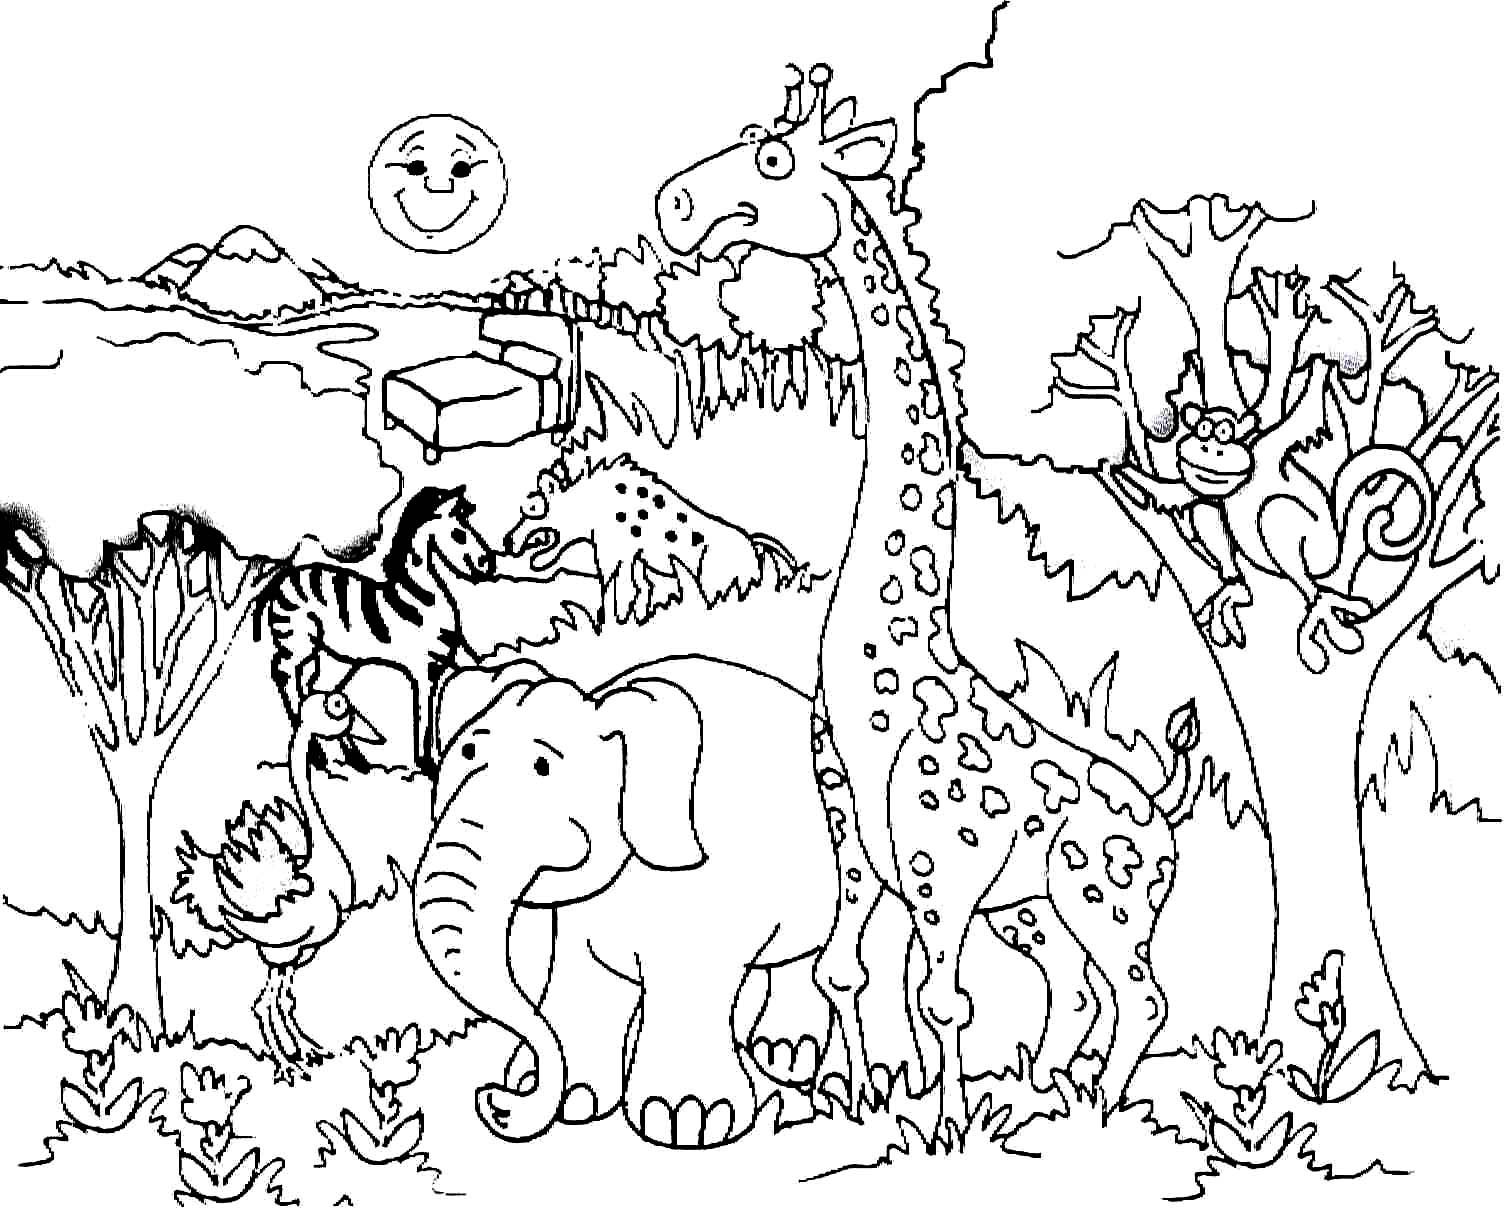 rainforest animal coloring pages amazon rainforest drawing at getdrawings free download coloring animal rainforest pages